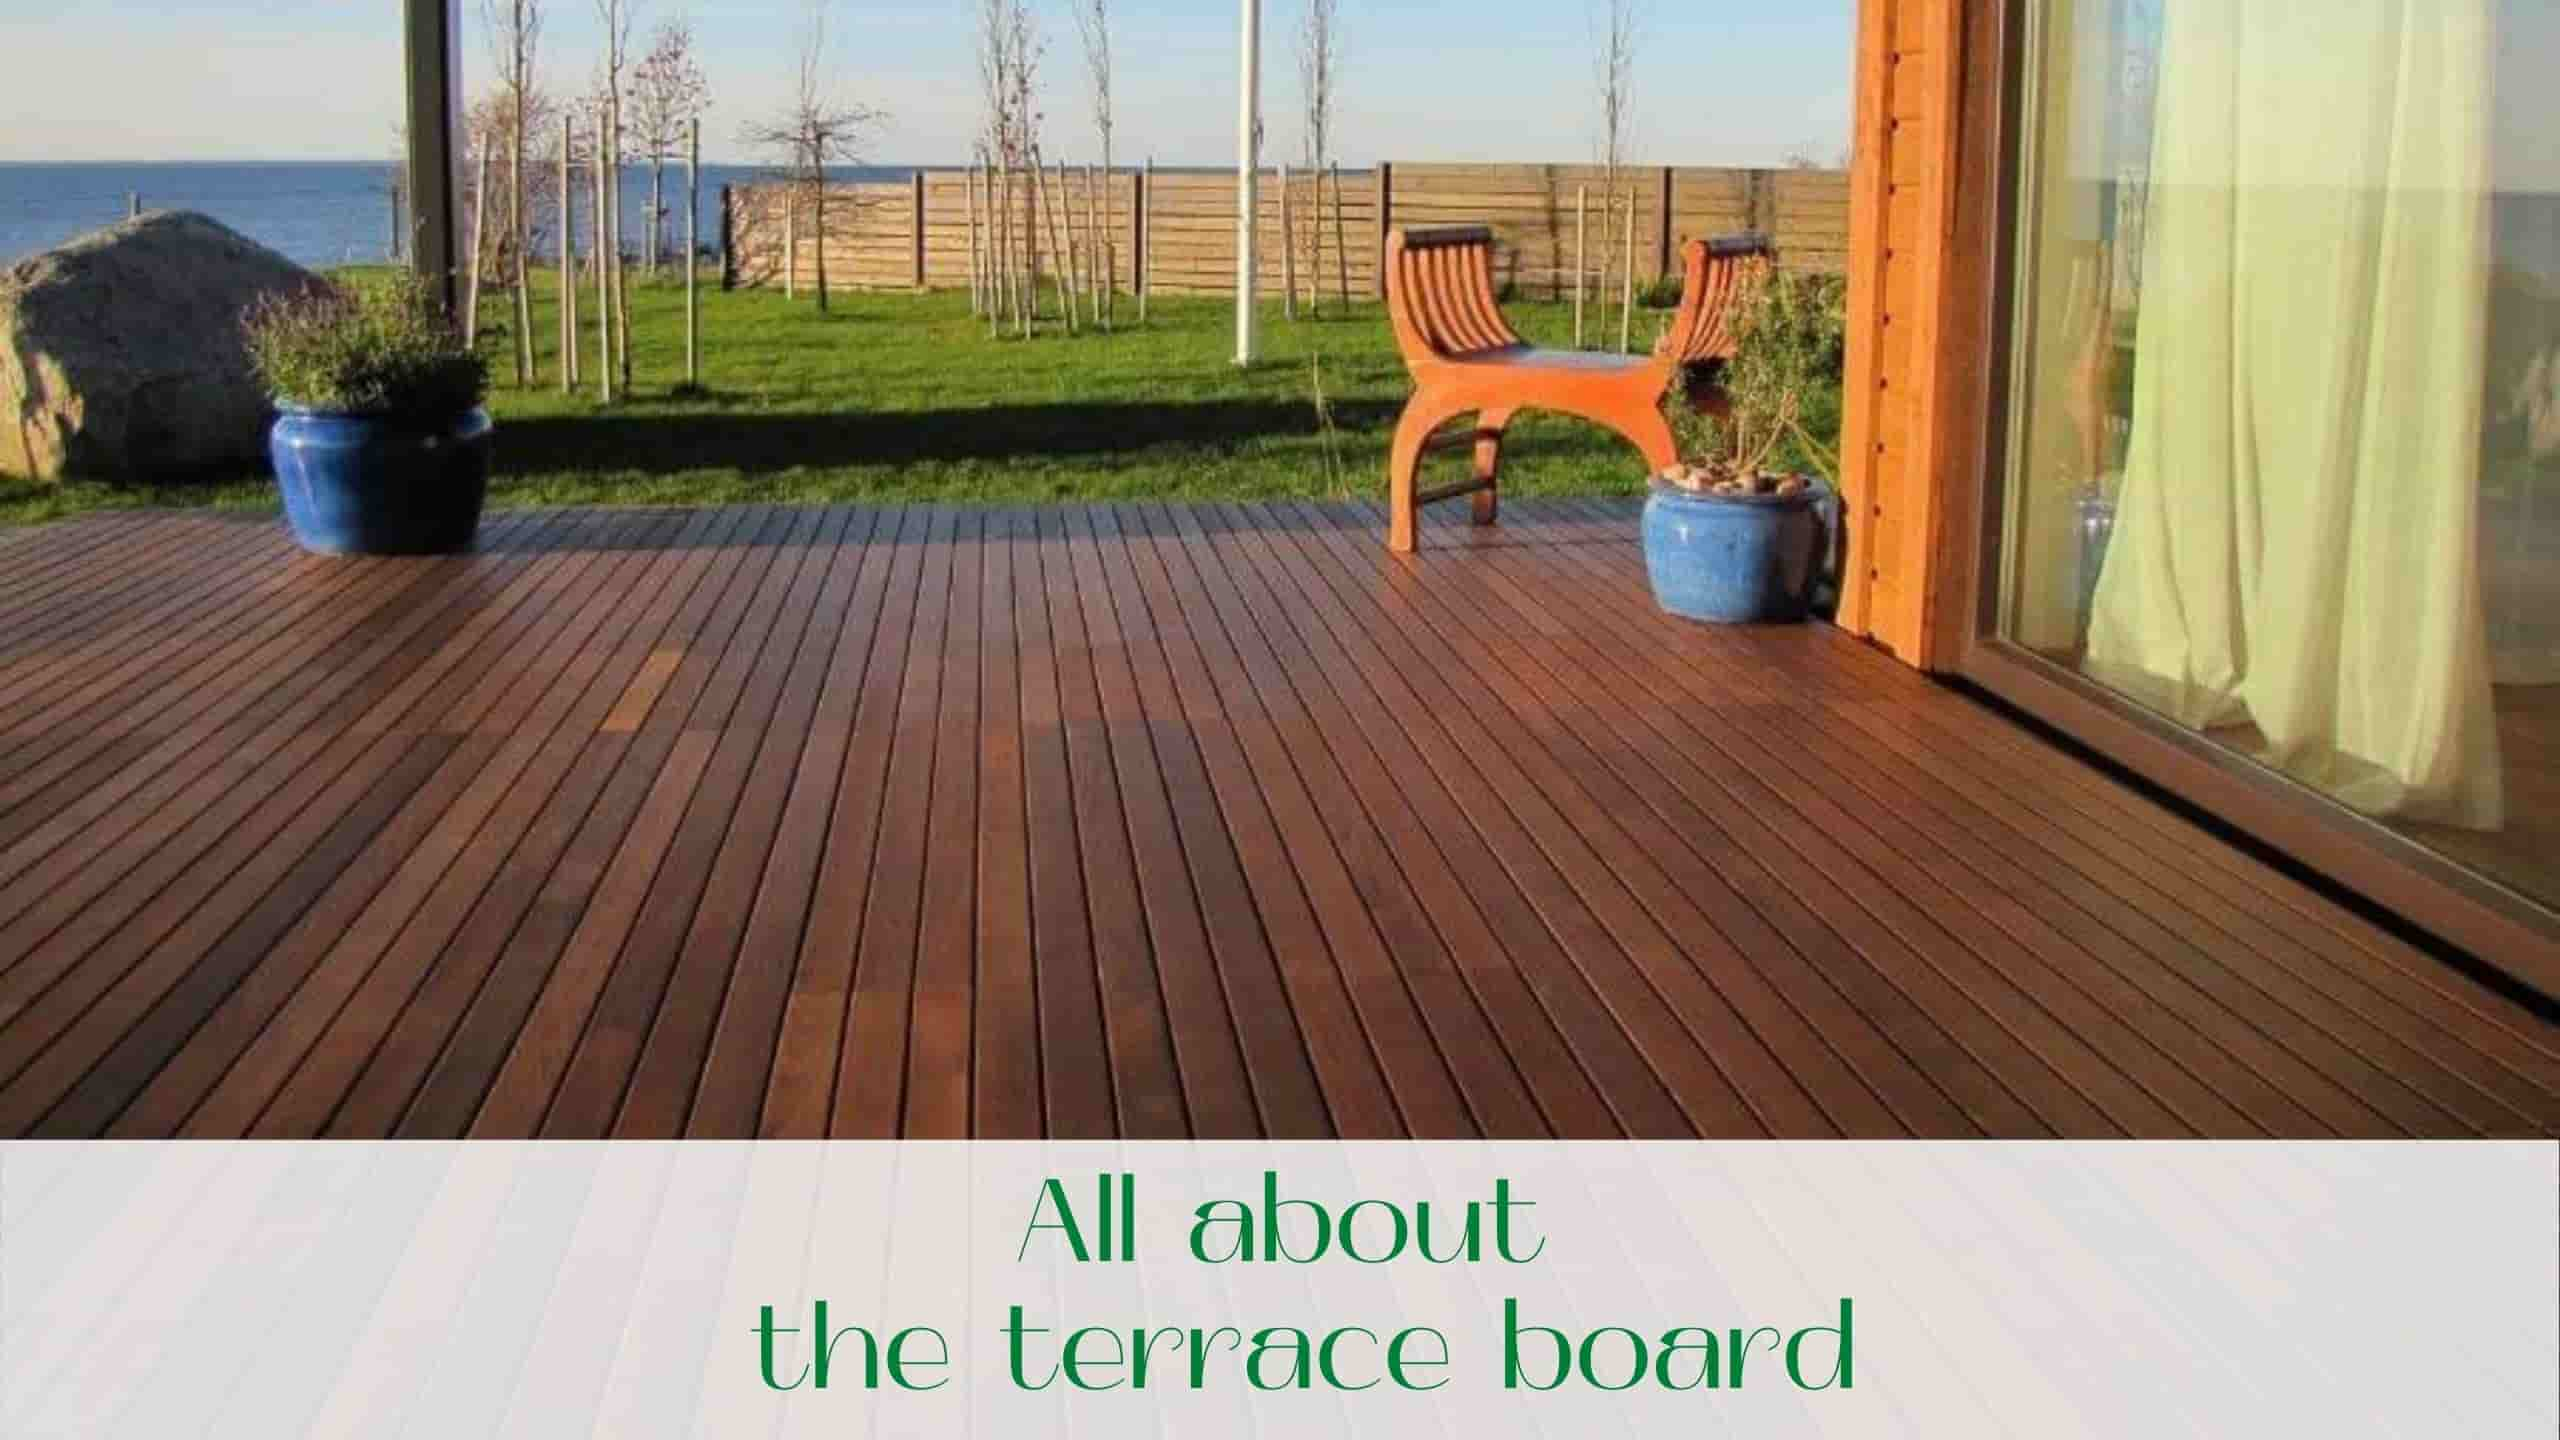 image-All-about-the-terrace-board